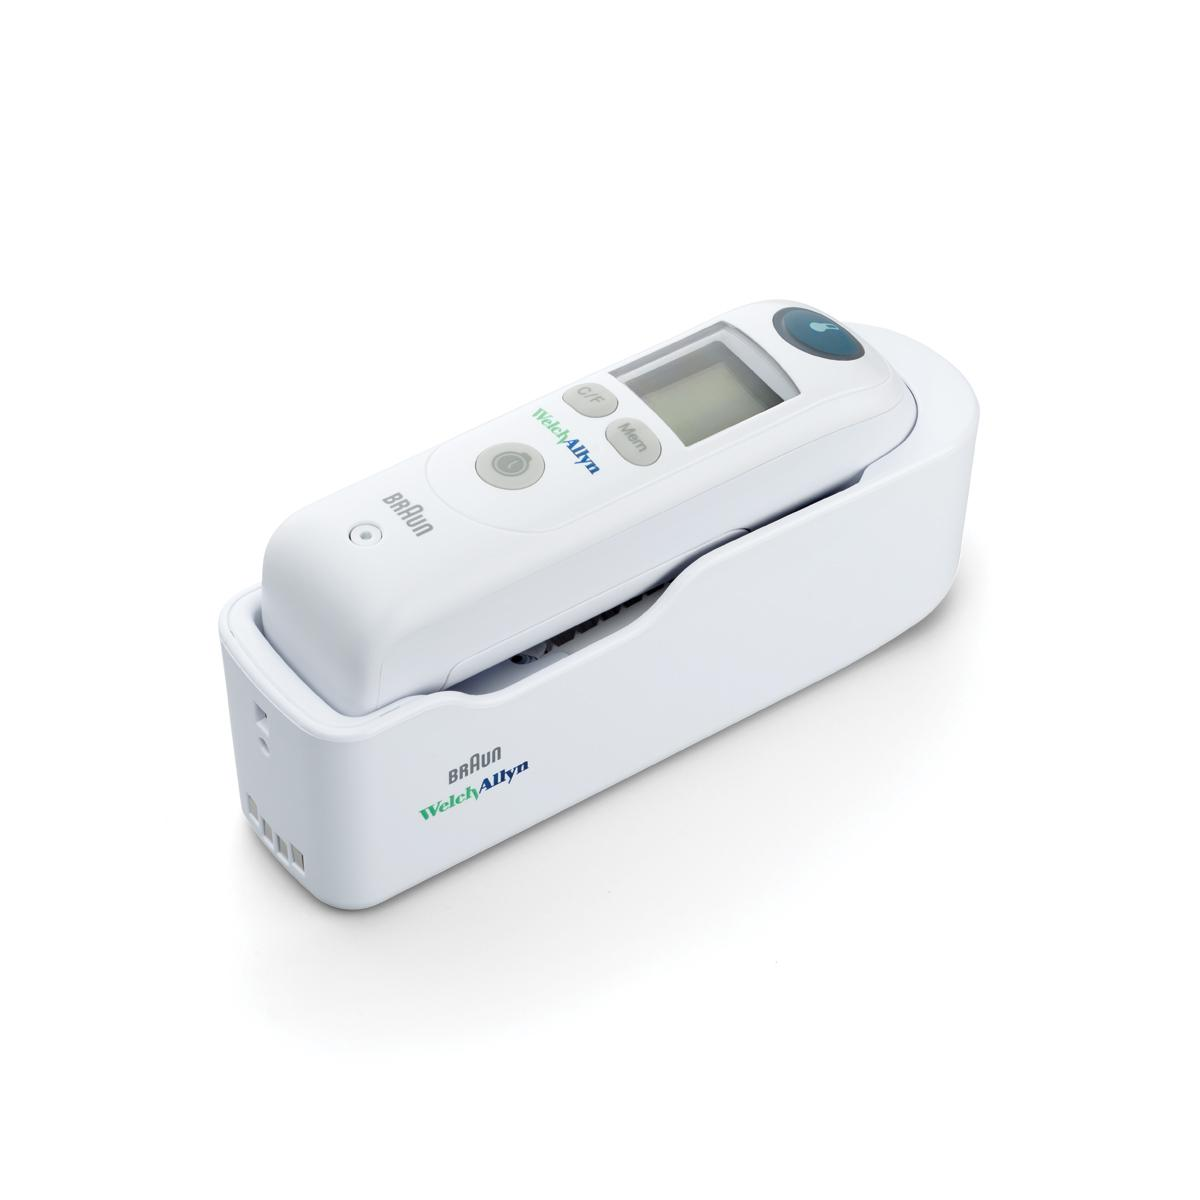 Braun ThermoScan PRO 6000 Ear Thermometer in cradle, 3/4 view, right side